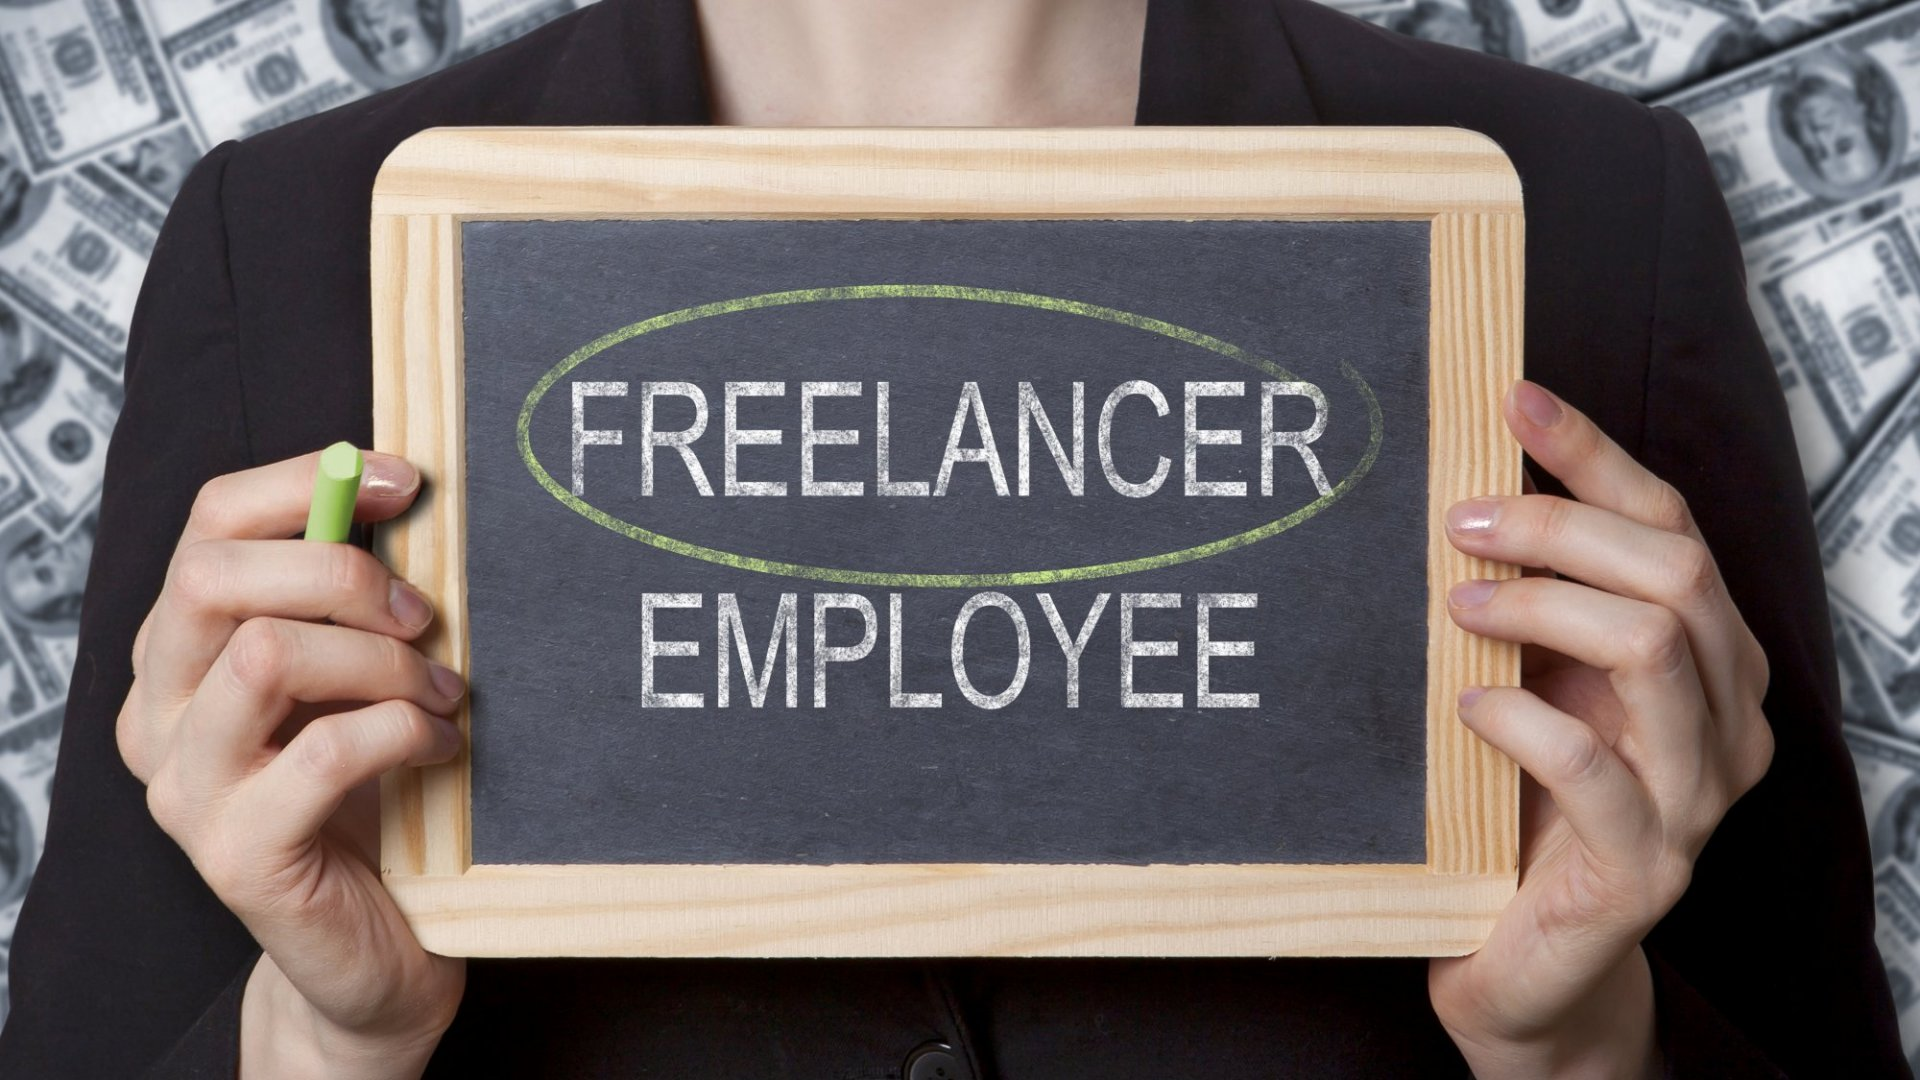 6 Things You Absolutely Must Know About Working with Freelancers